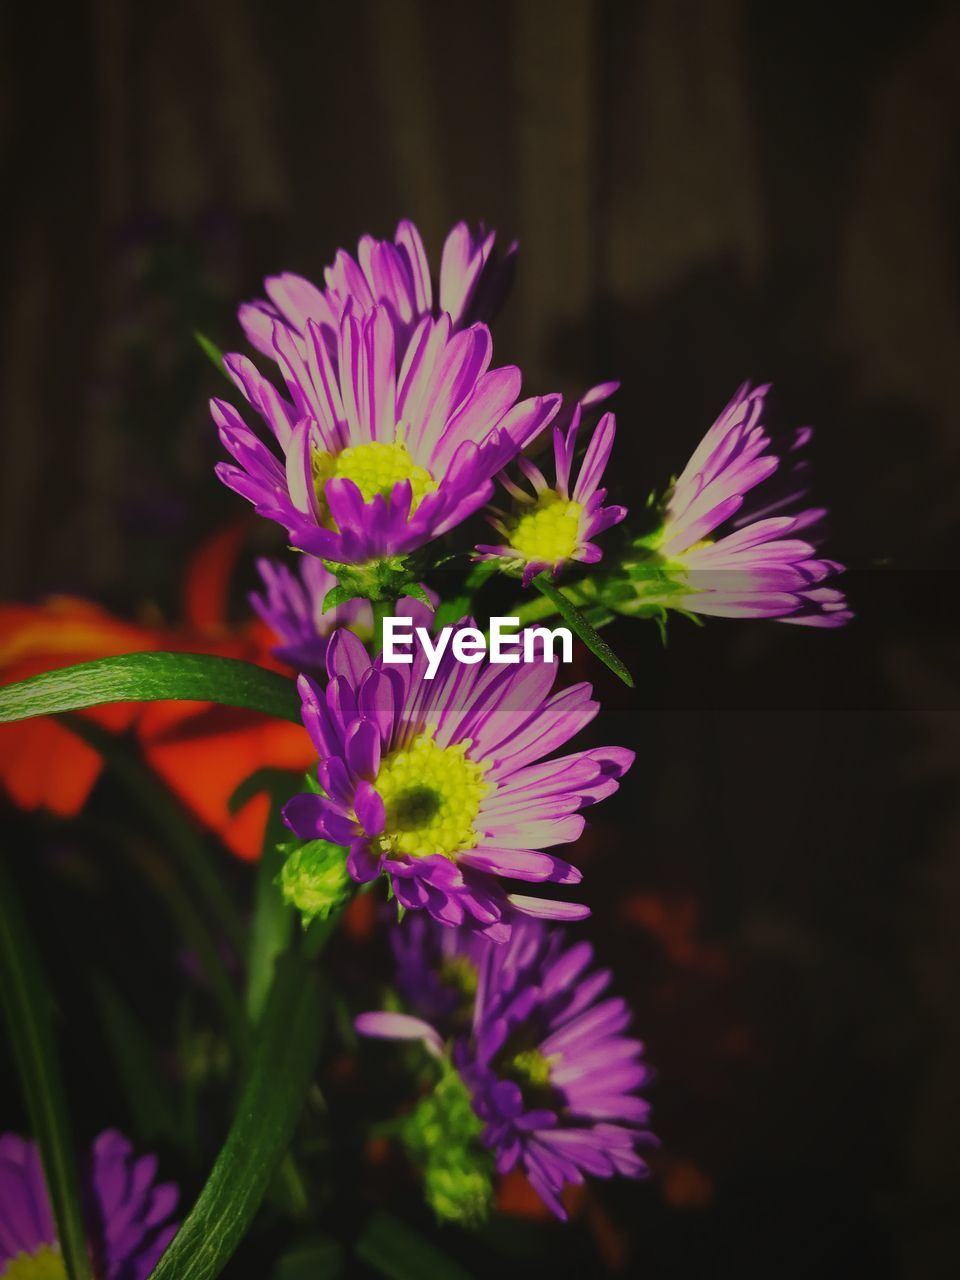 flowering plant, flower, plant, vulnerability, fragility, freshness, petal, beauty in nature, flower head, close-up, inflorescence, growth, nature, focus on foreground, purple, no people, selective focus, plant part, leaf, botany, pollen